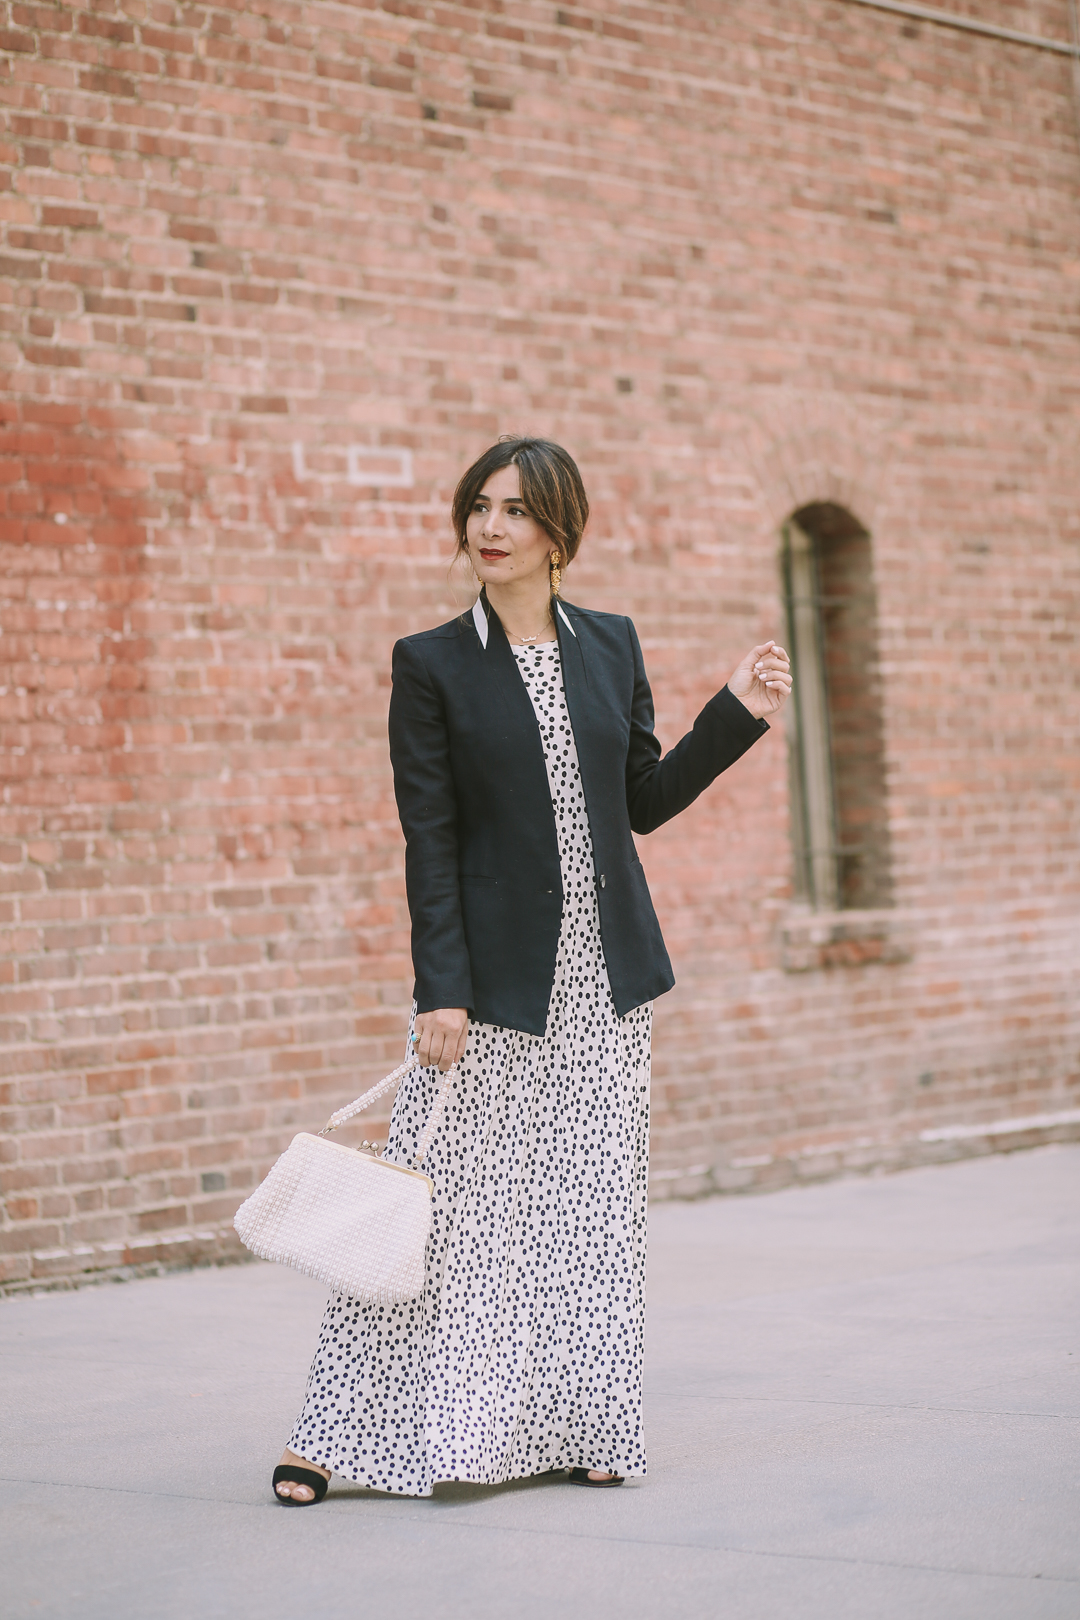 how to style a blazer and maxi dress outfit ideas